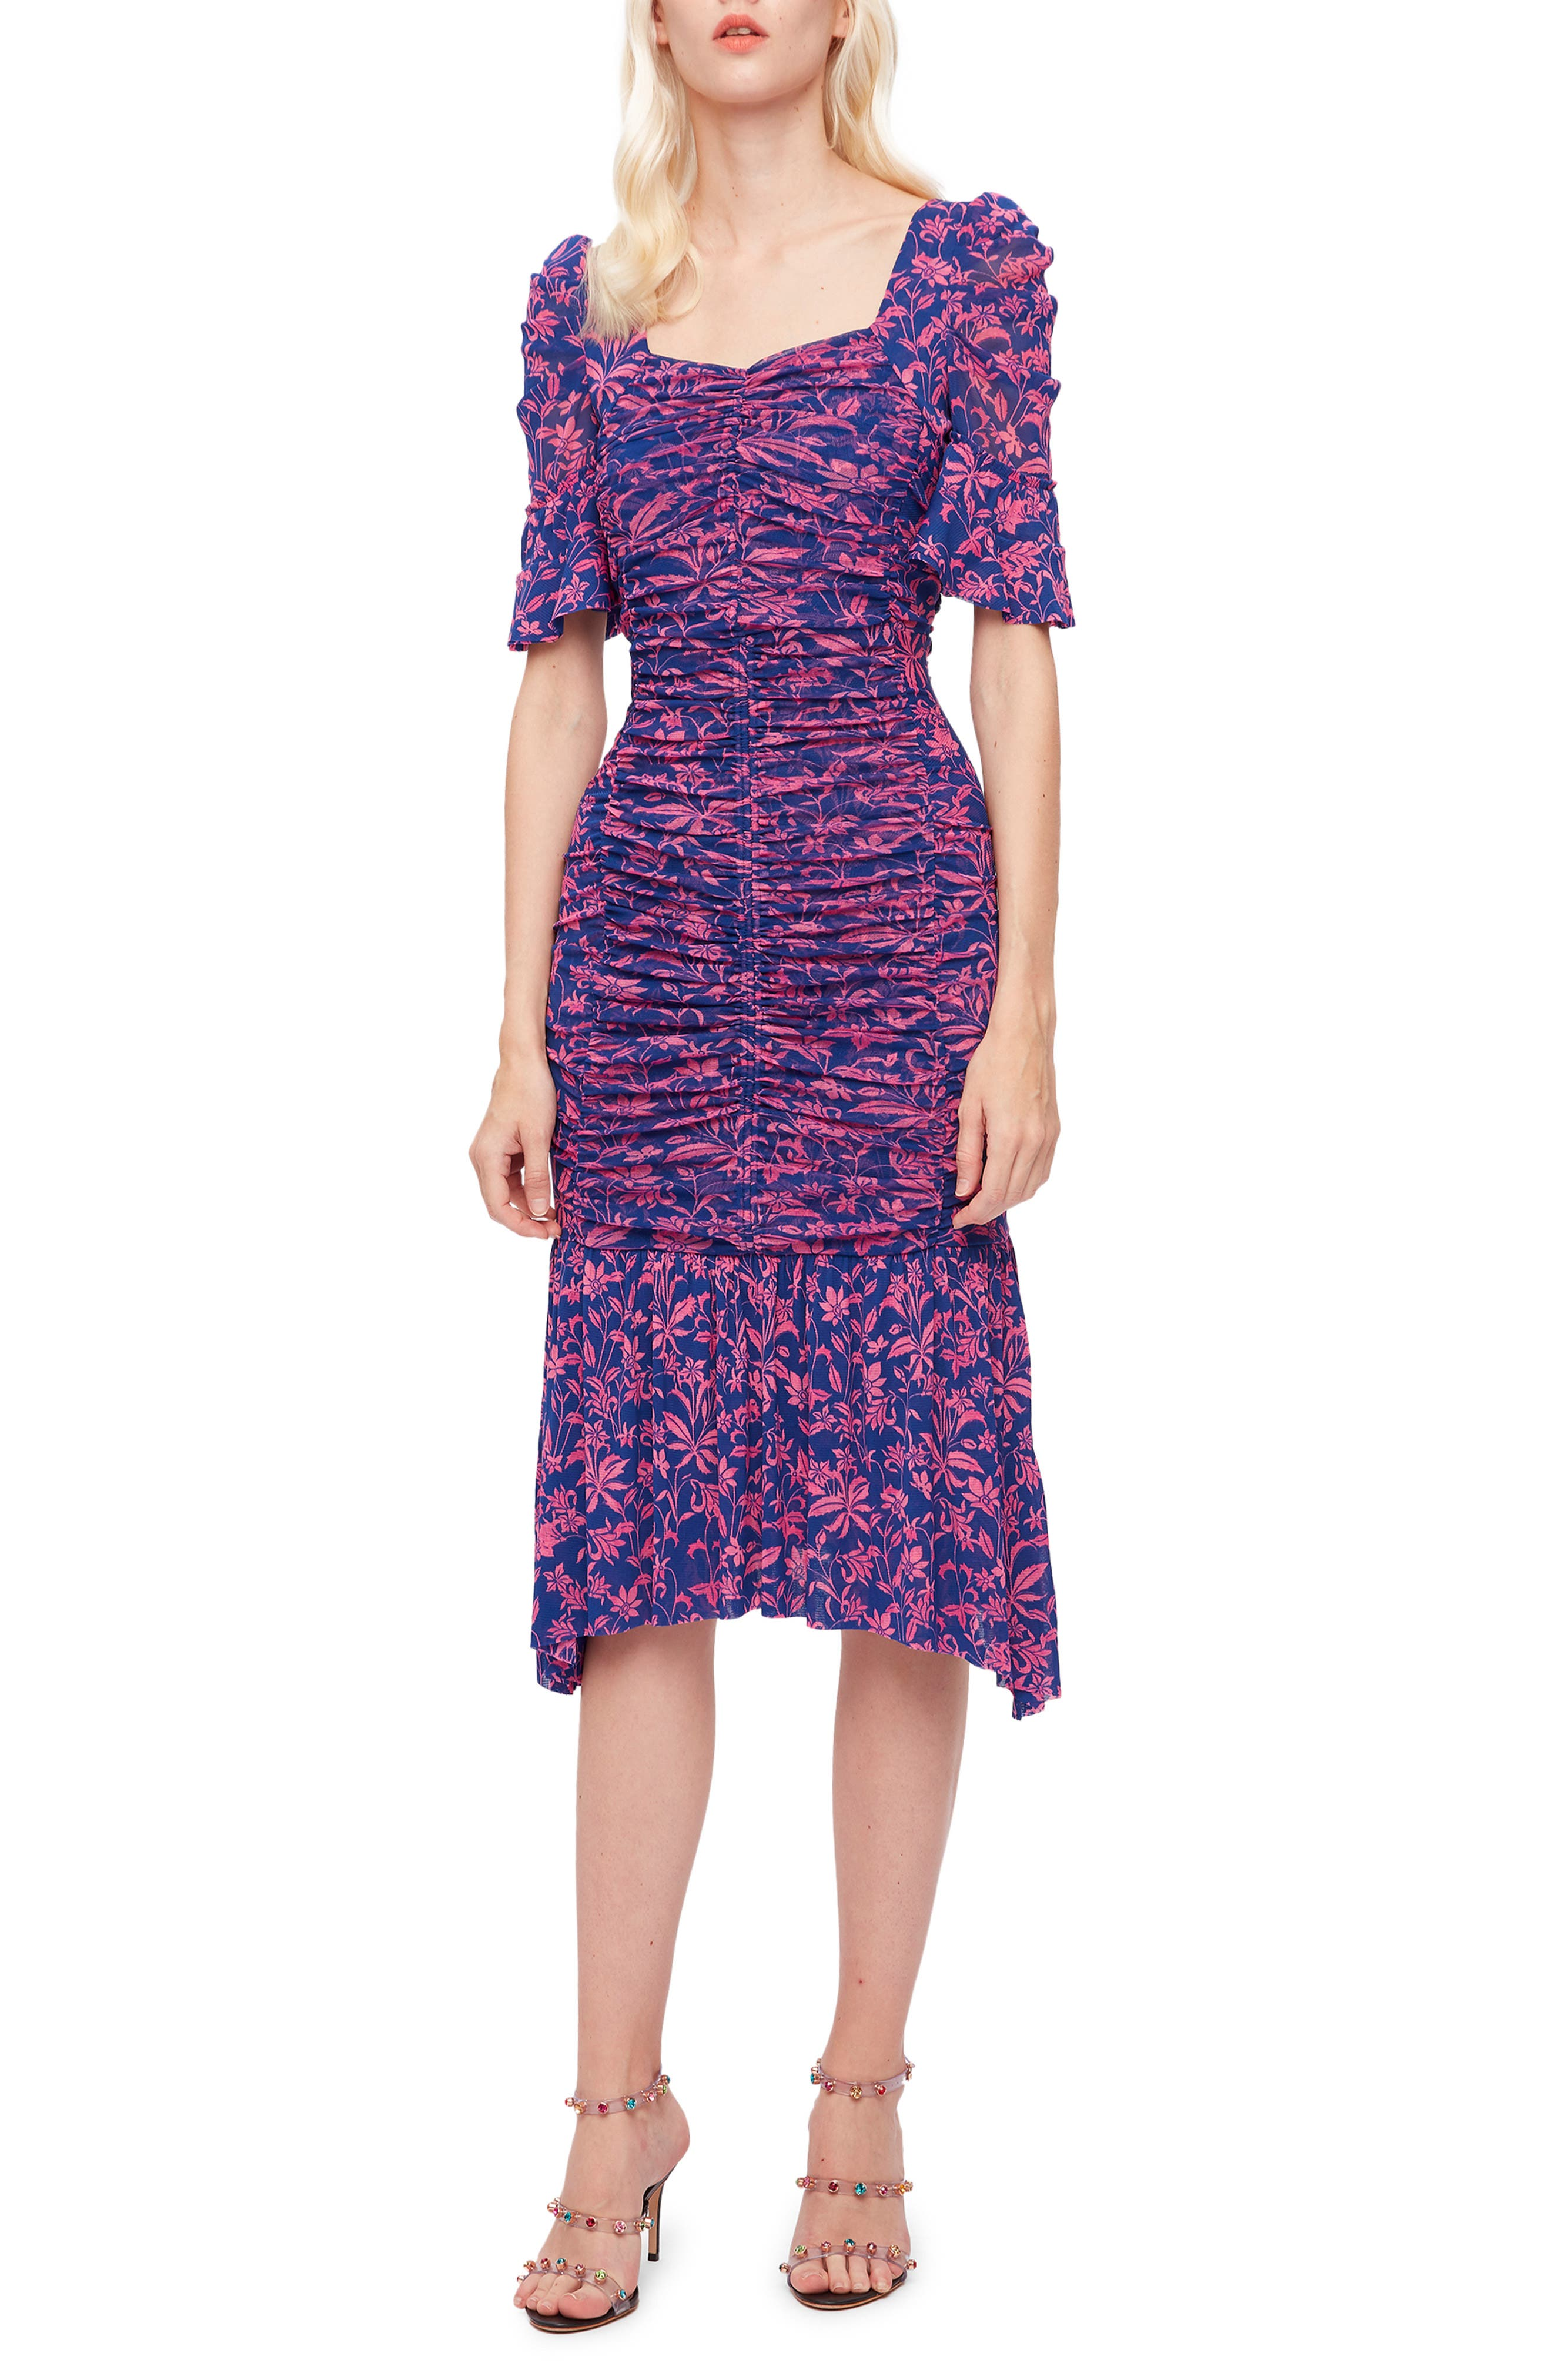 Taylor Floral Ruched Mesh Midi Dress